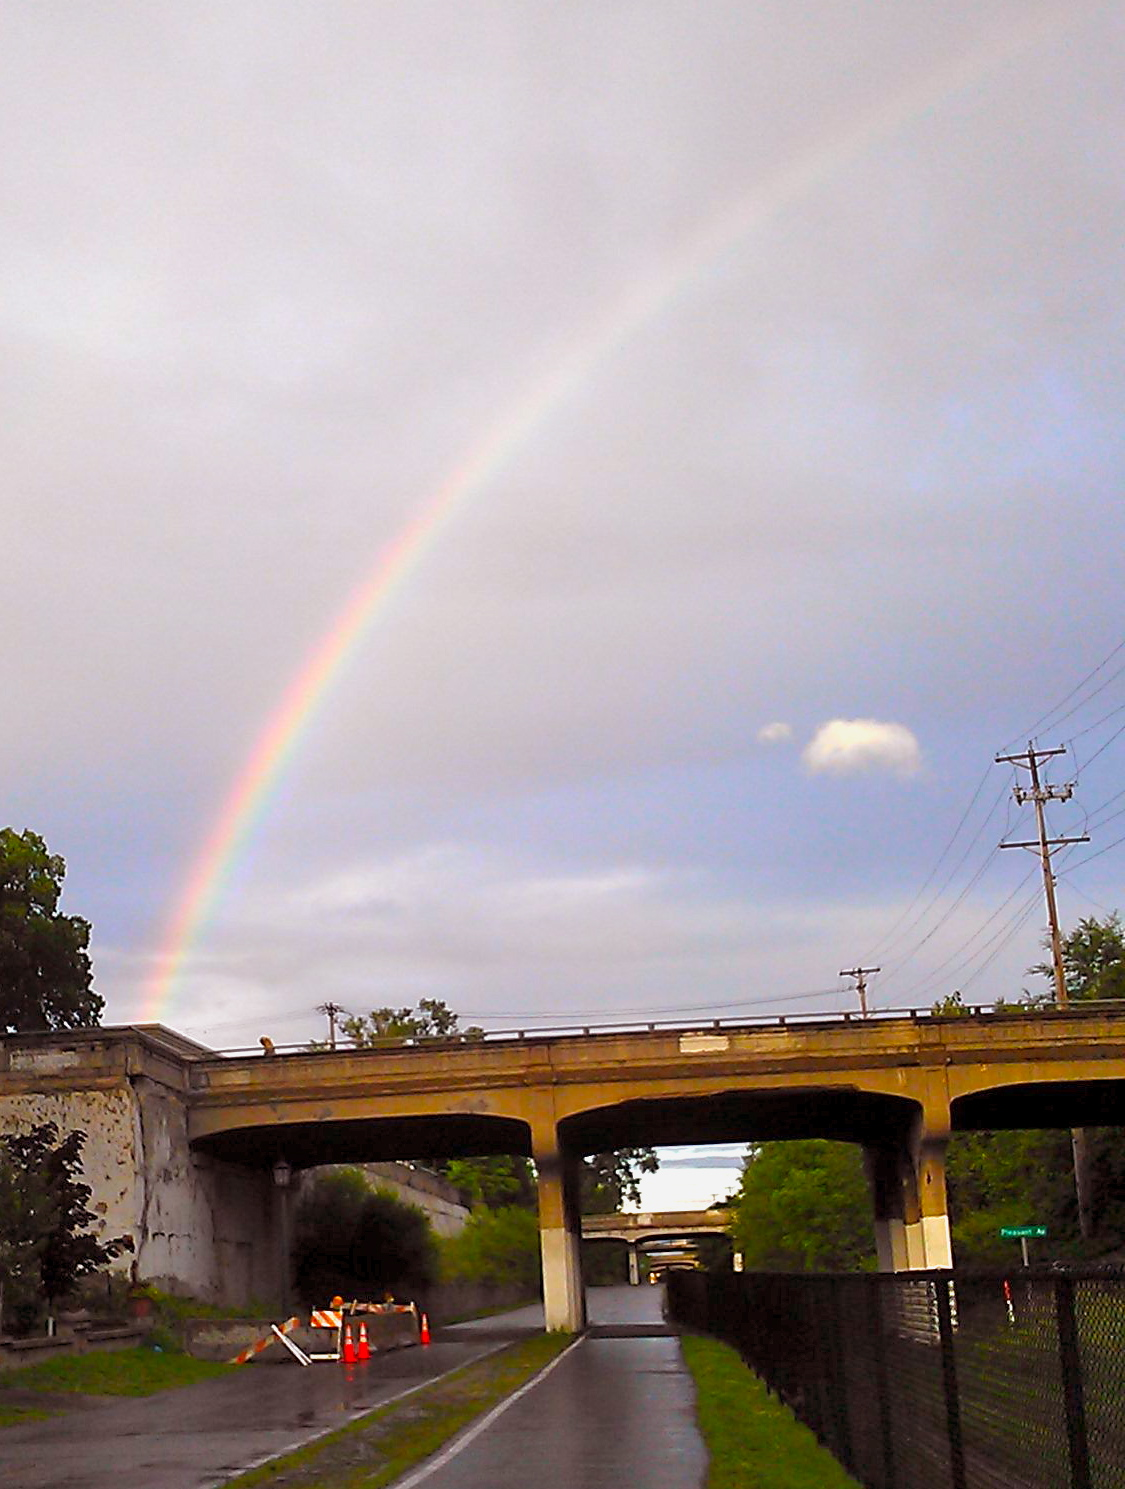 Rainbow over the Midtown Greenway